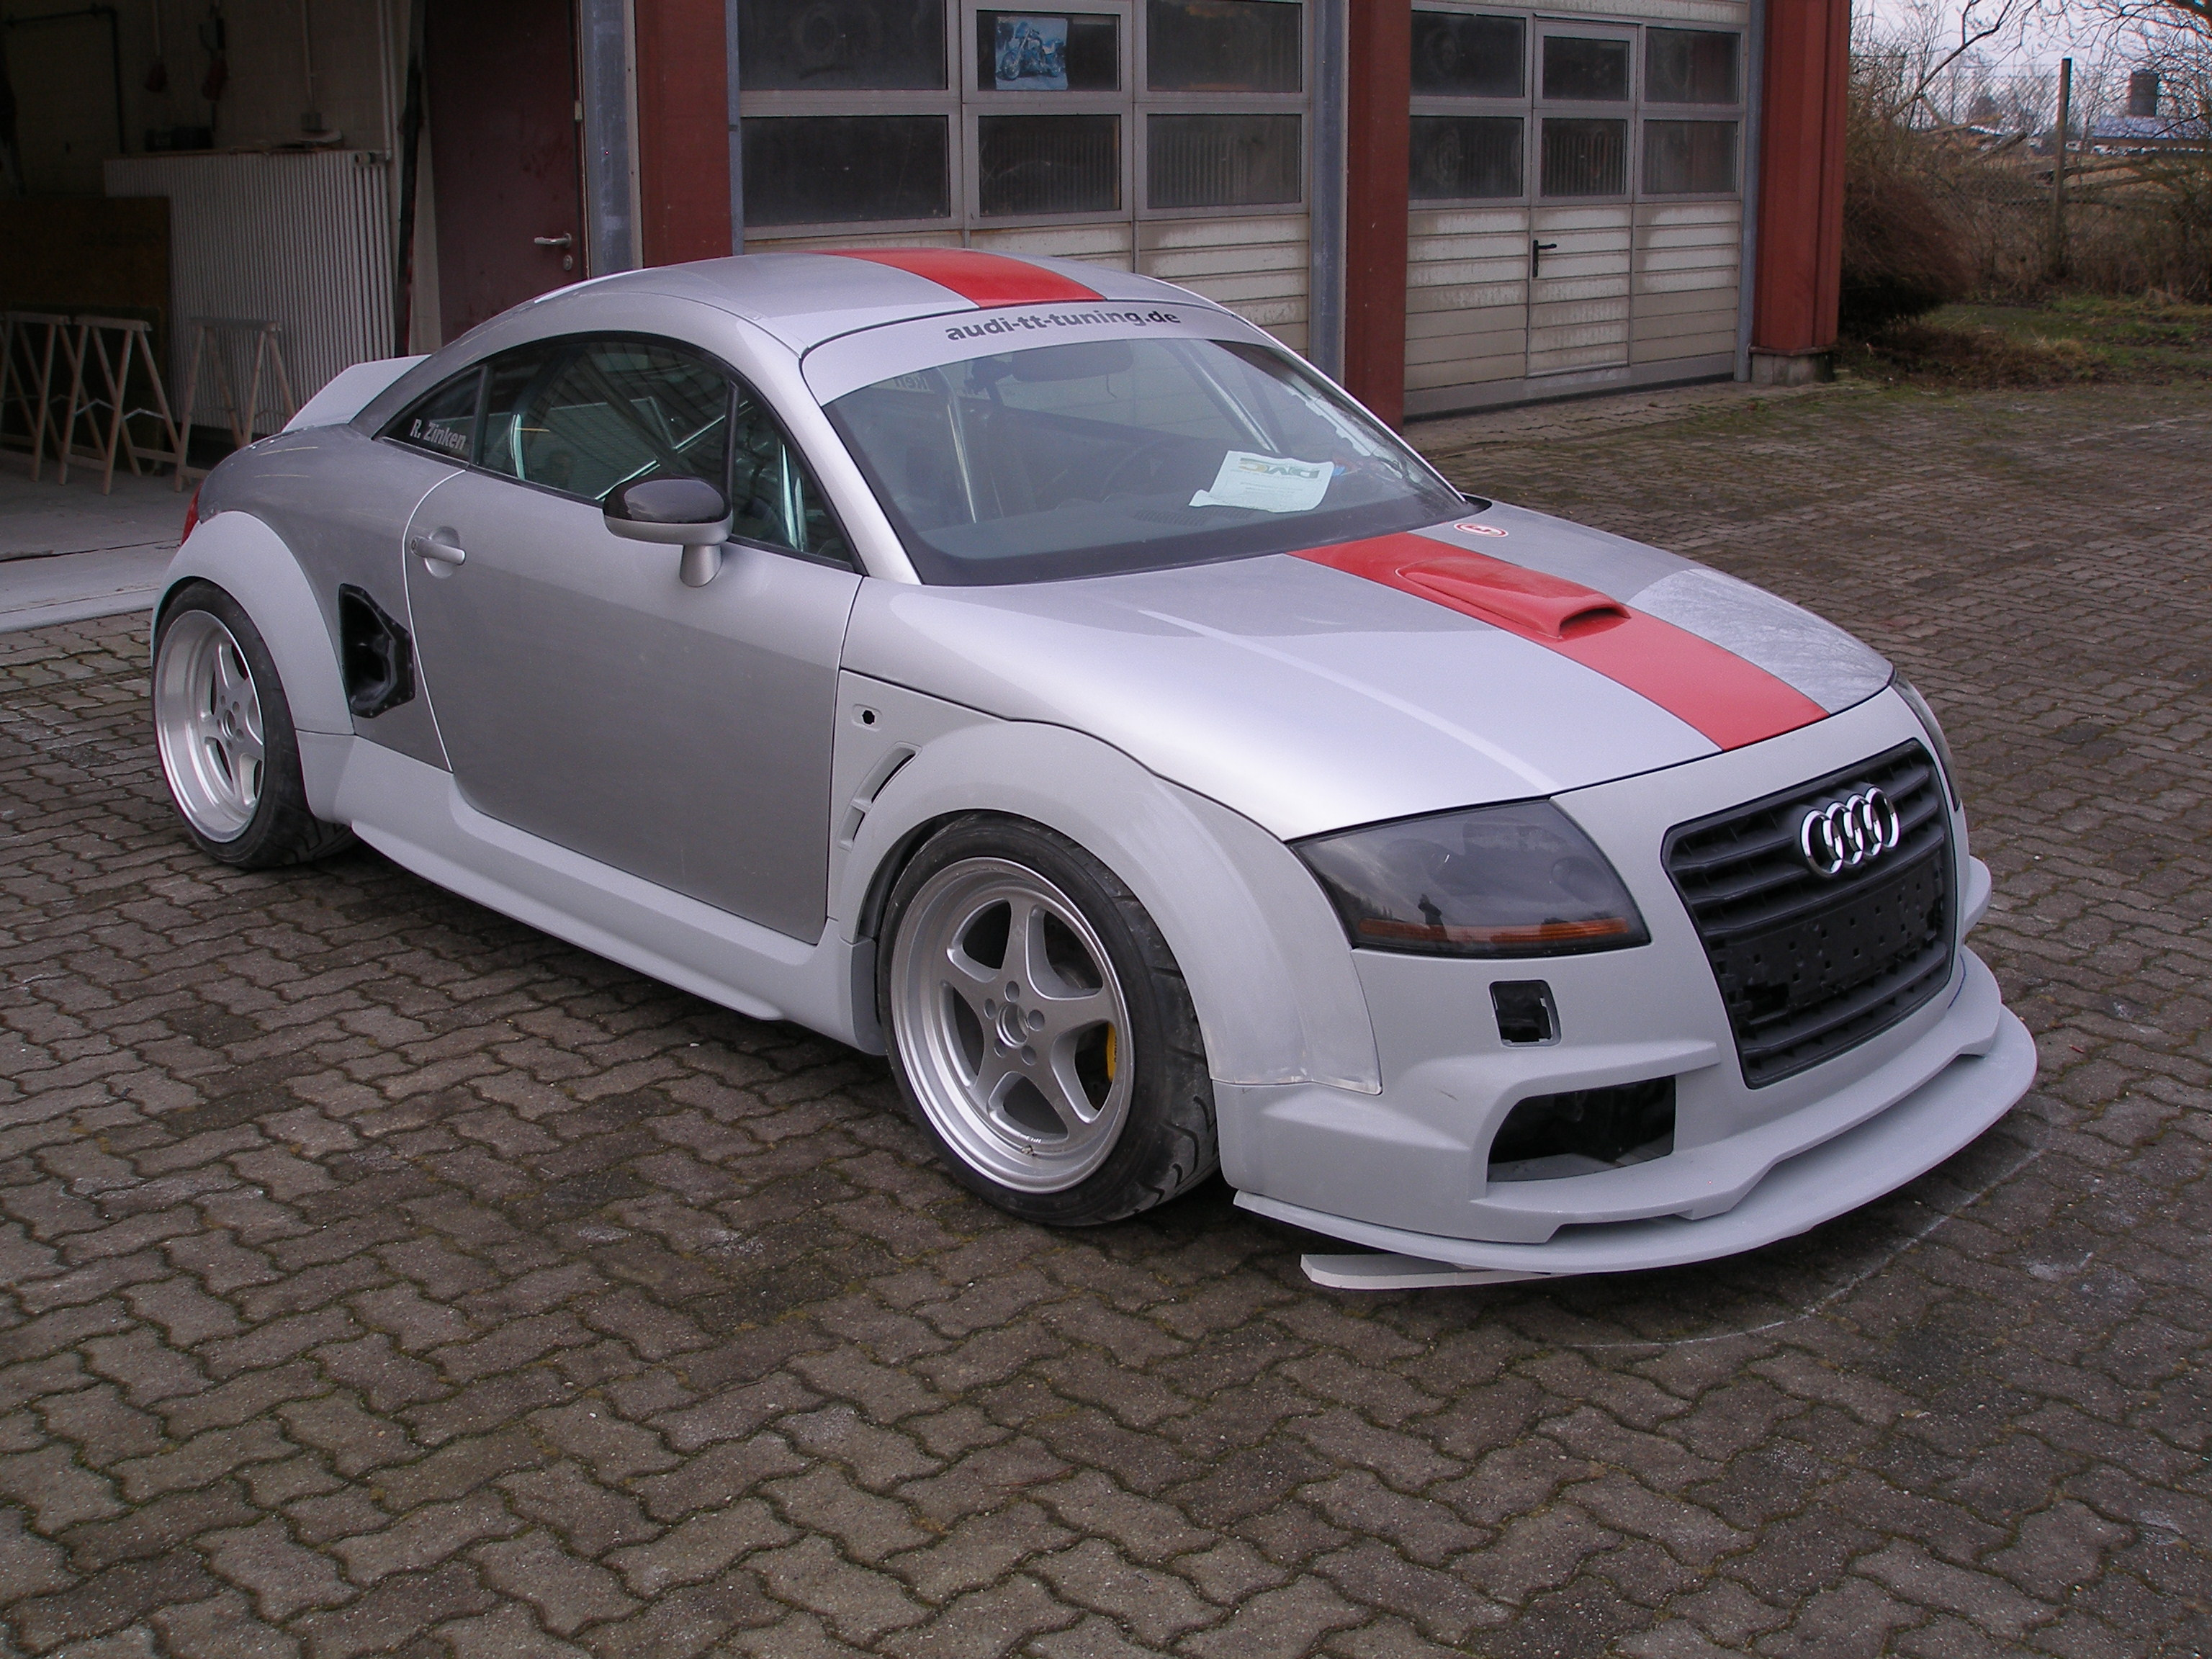 dmc widebody kit project coming to life very soon audi. Black Bedroom Furniture Sets. Home Design Ideas